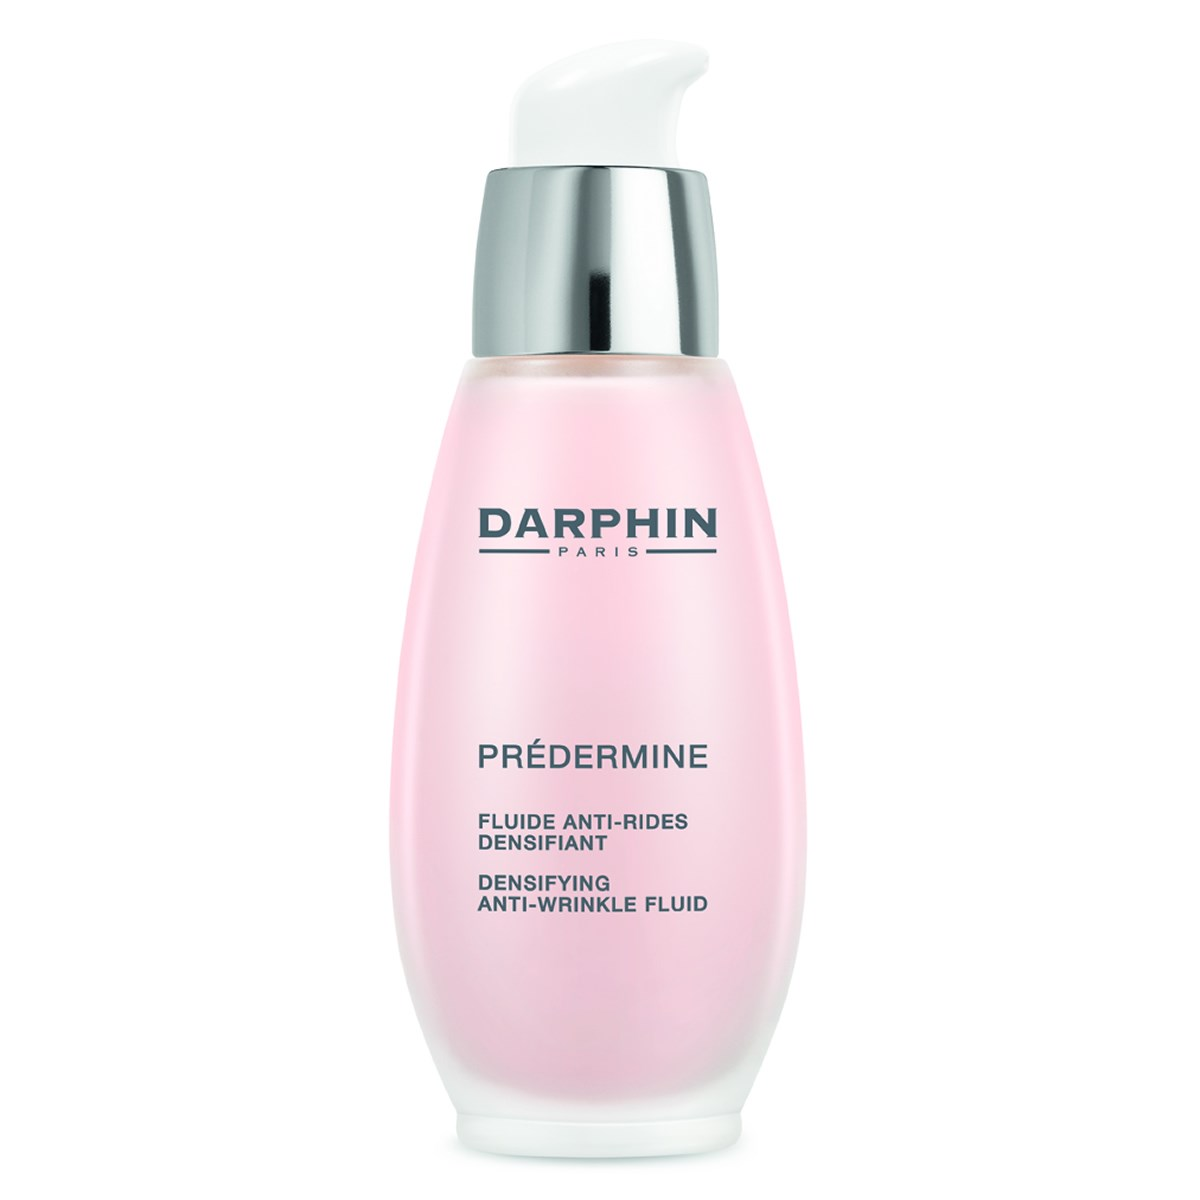 Darphin Predermine Densifying Anti-Wrinkle Fluid